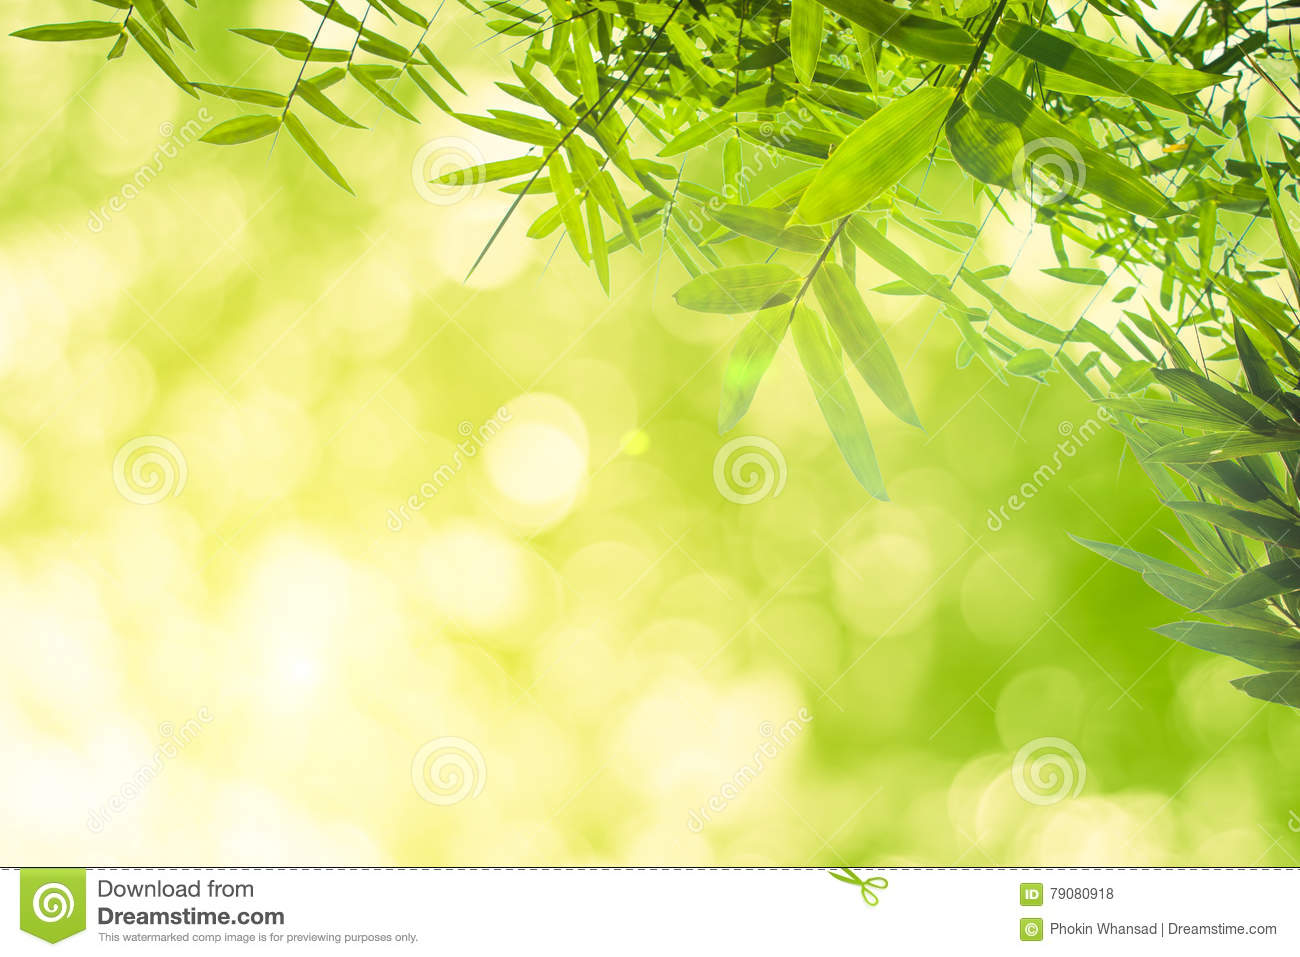 Green Bamboo Leaves Or With Background Green Energy Stock Photo